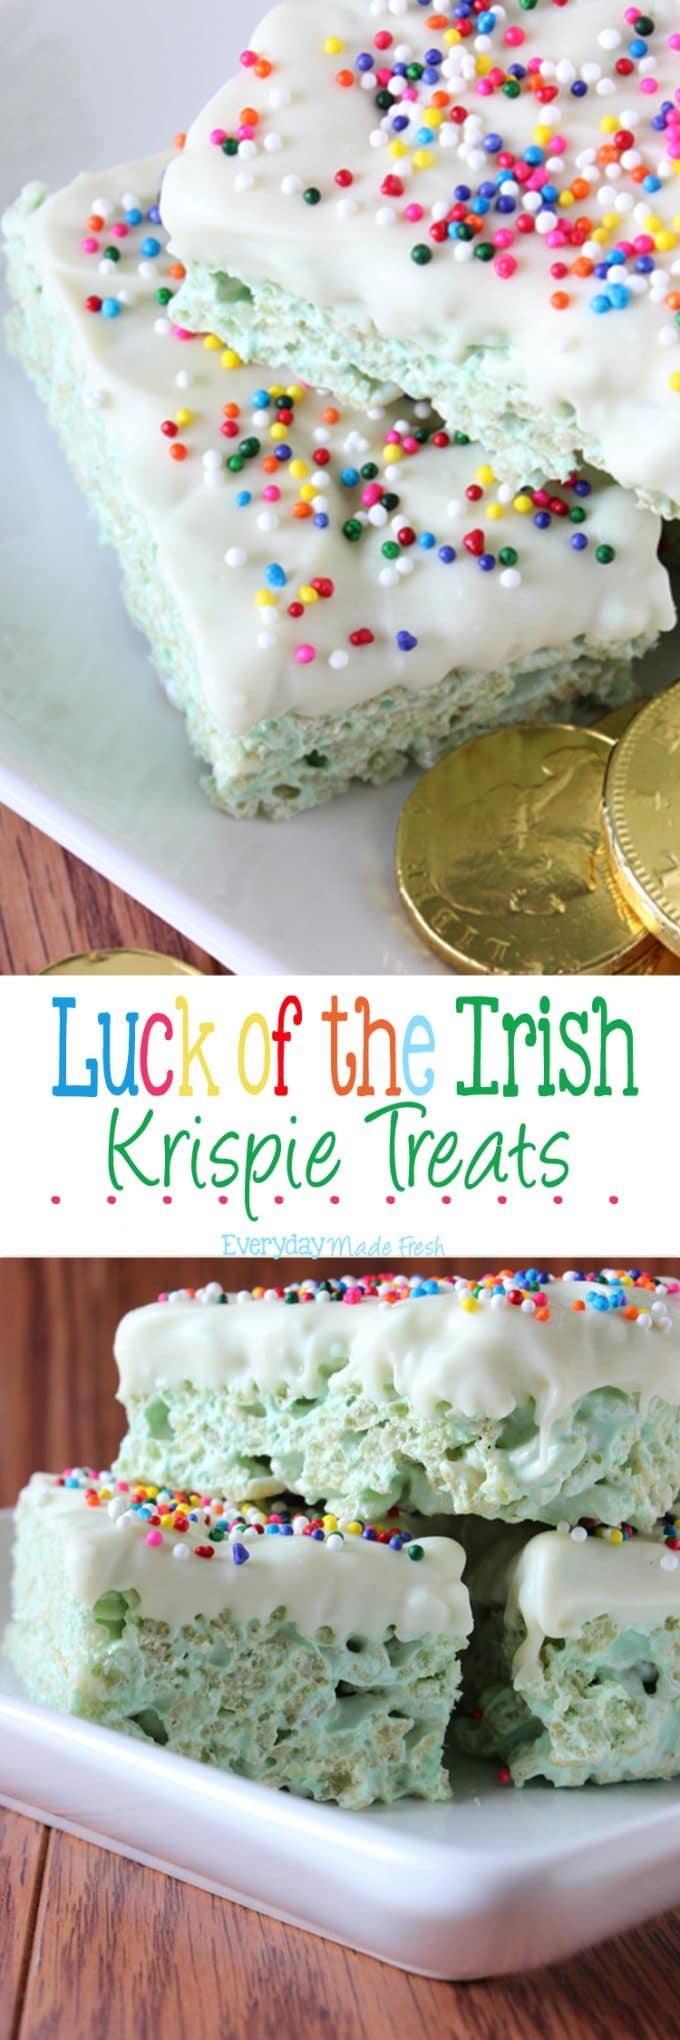 Luck of the Irish Krispie Treats | EverydayMadeFresh.com